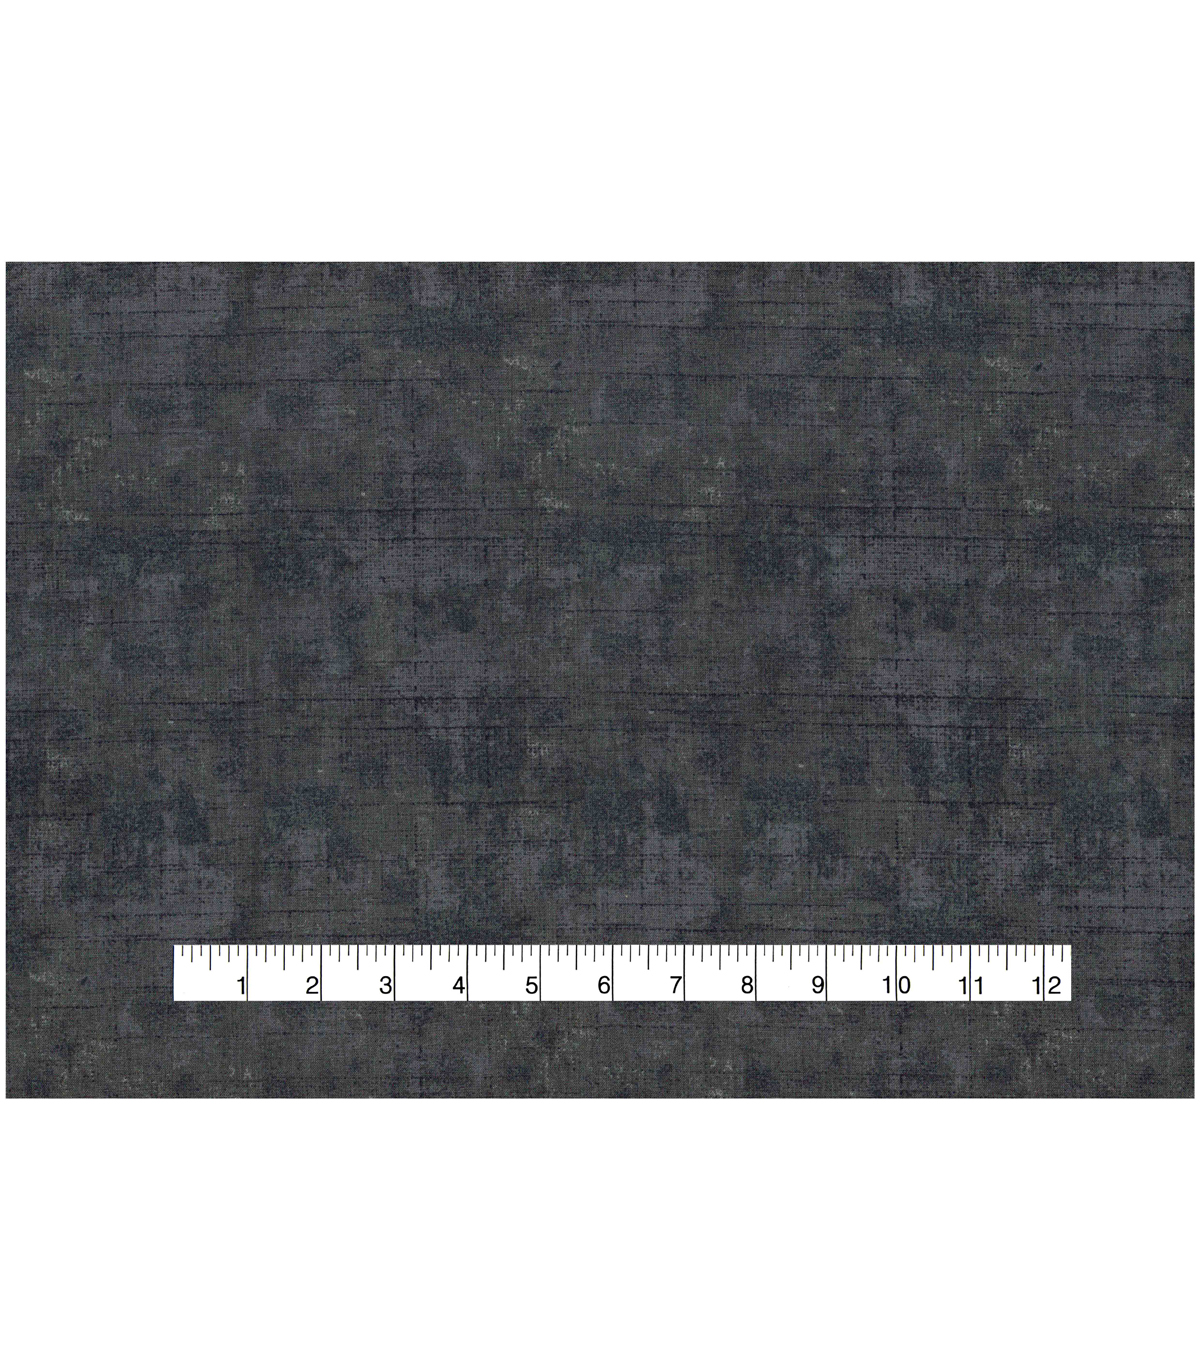 Keepsake Calico Cotton Fabric 43\u0027\u0027-Dark Gray Tonal Blender